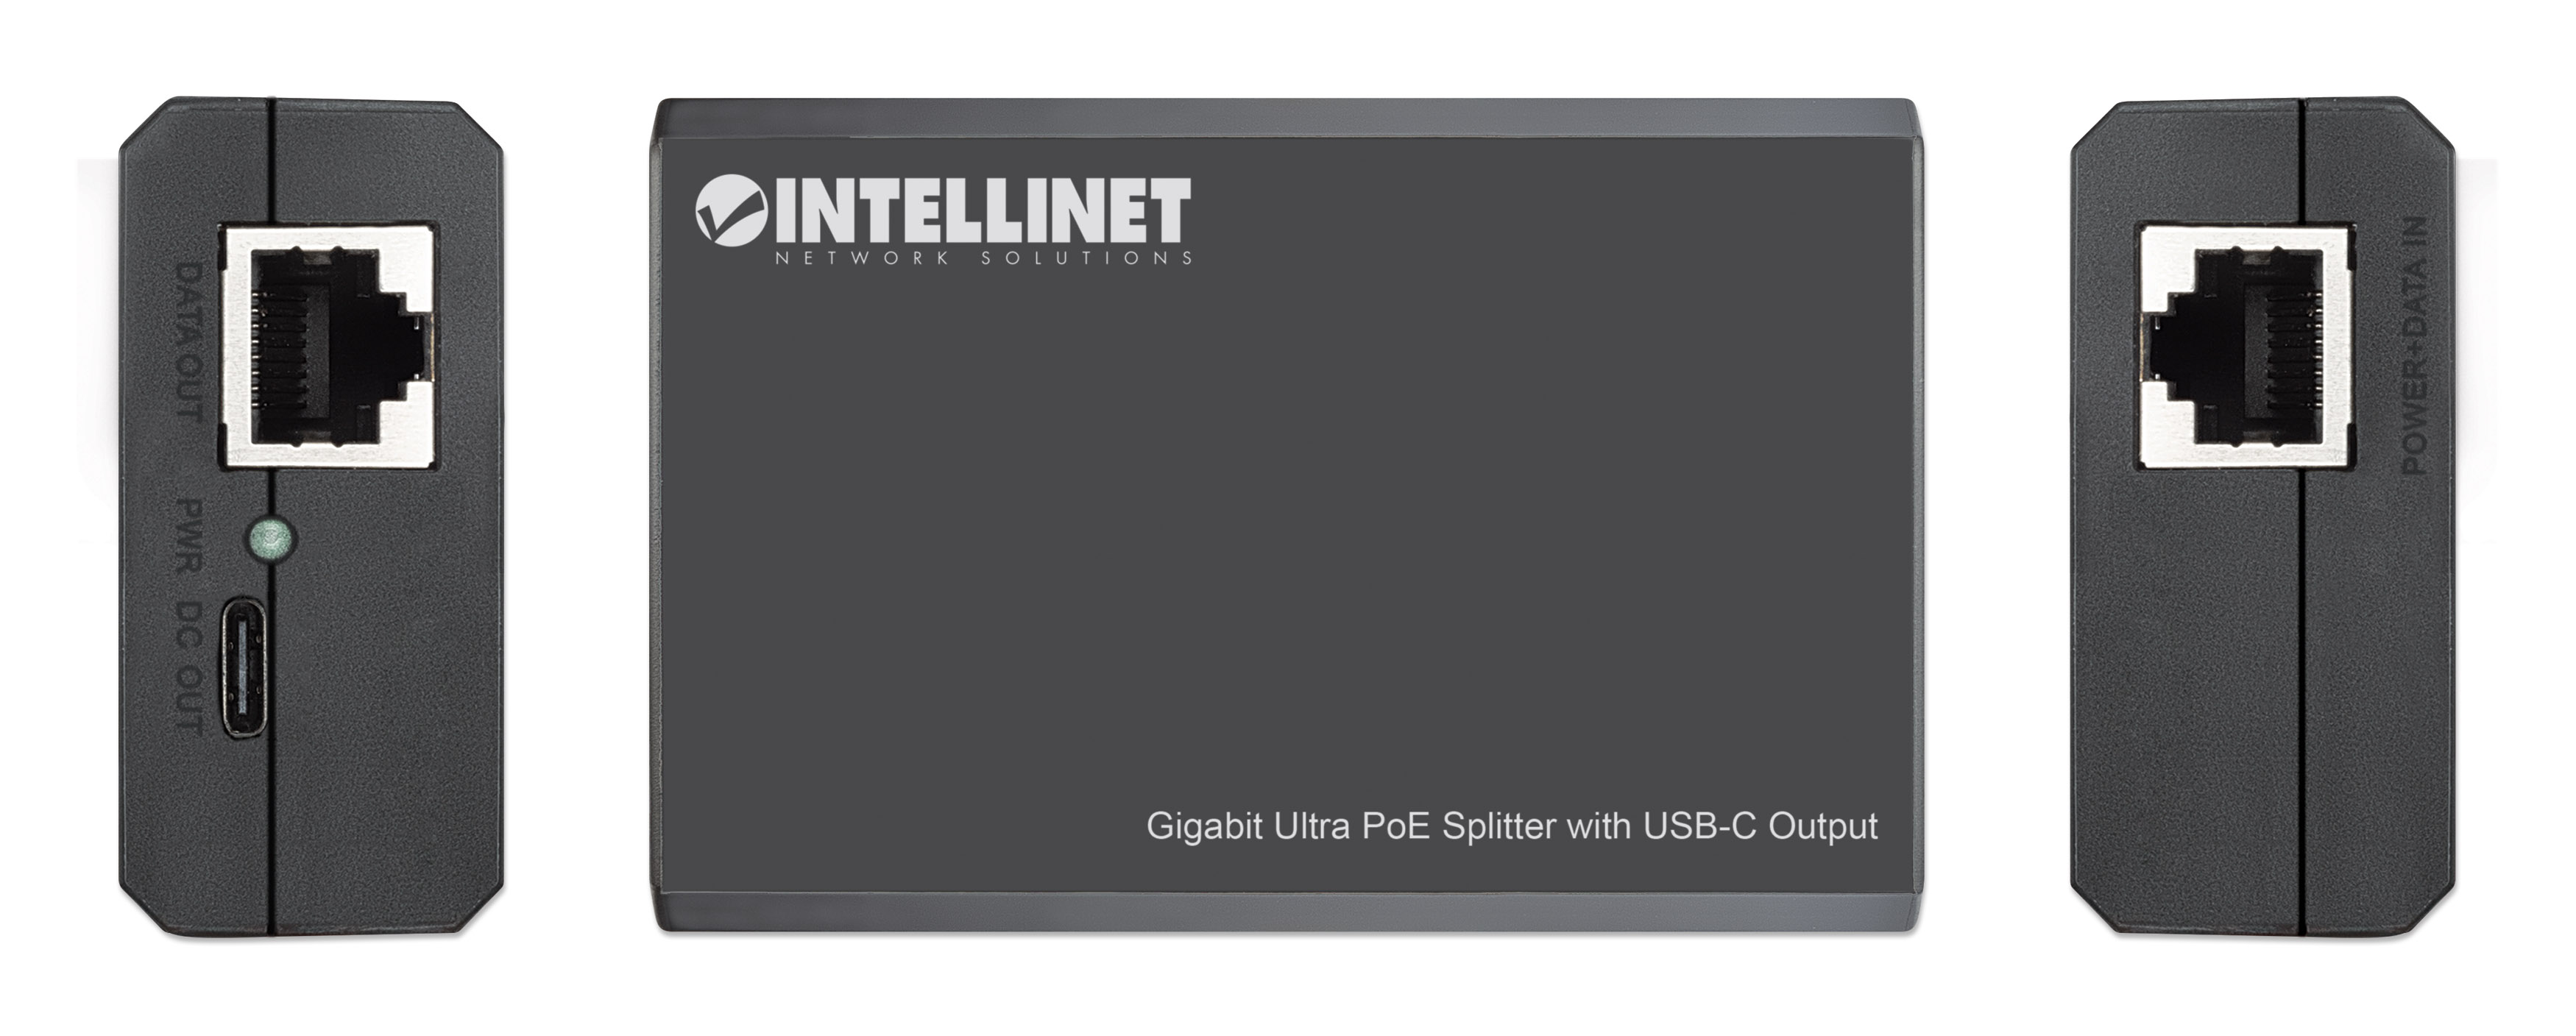 Gigabit Ultra PoE Splitter with USB-C Output